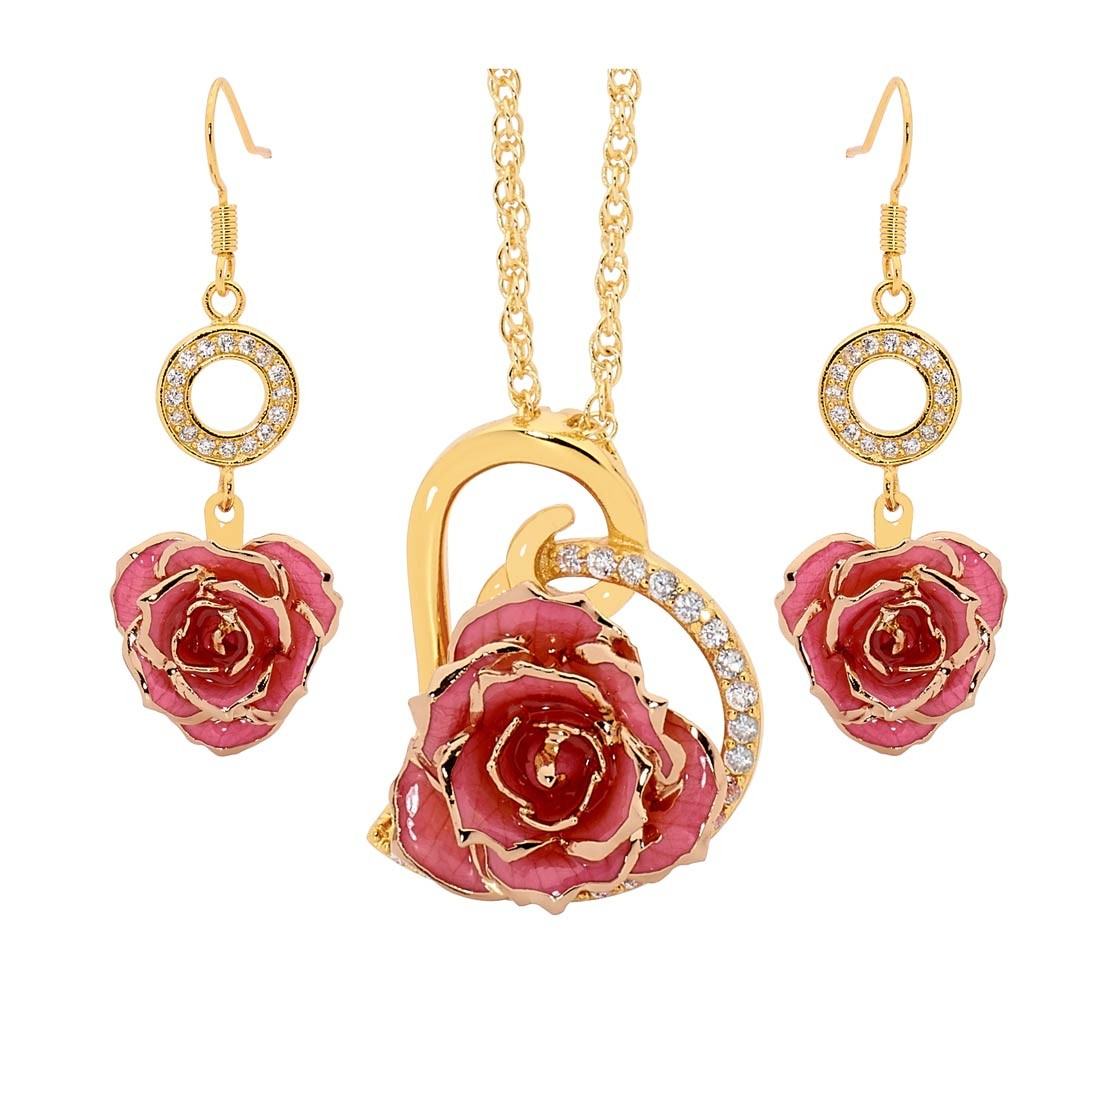 Matching pendant and earring set heart theme 24k gold pink matching pendant and earring set heart theme 24k gold mozeypictures Choice Image